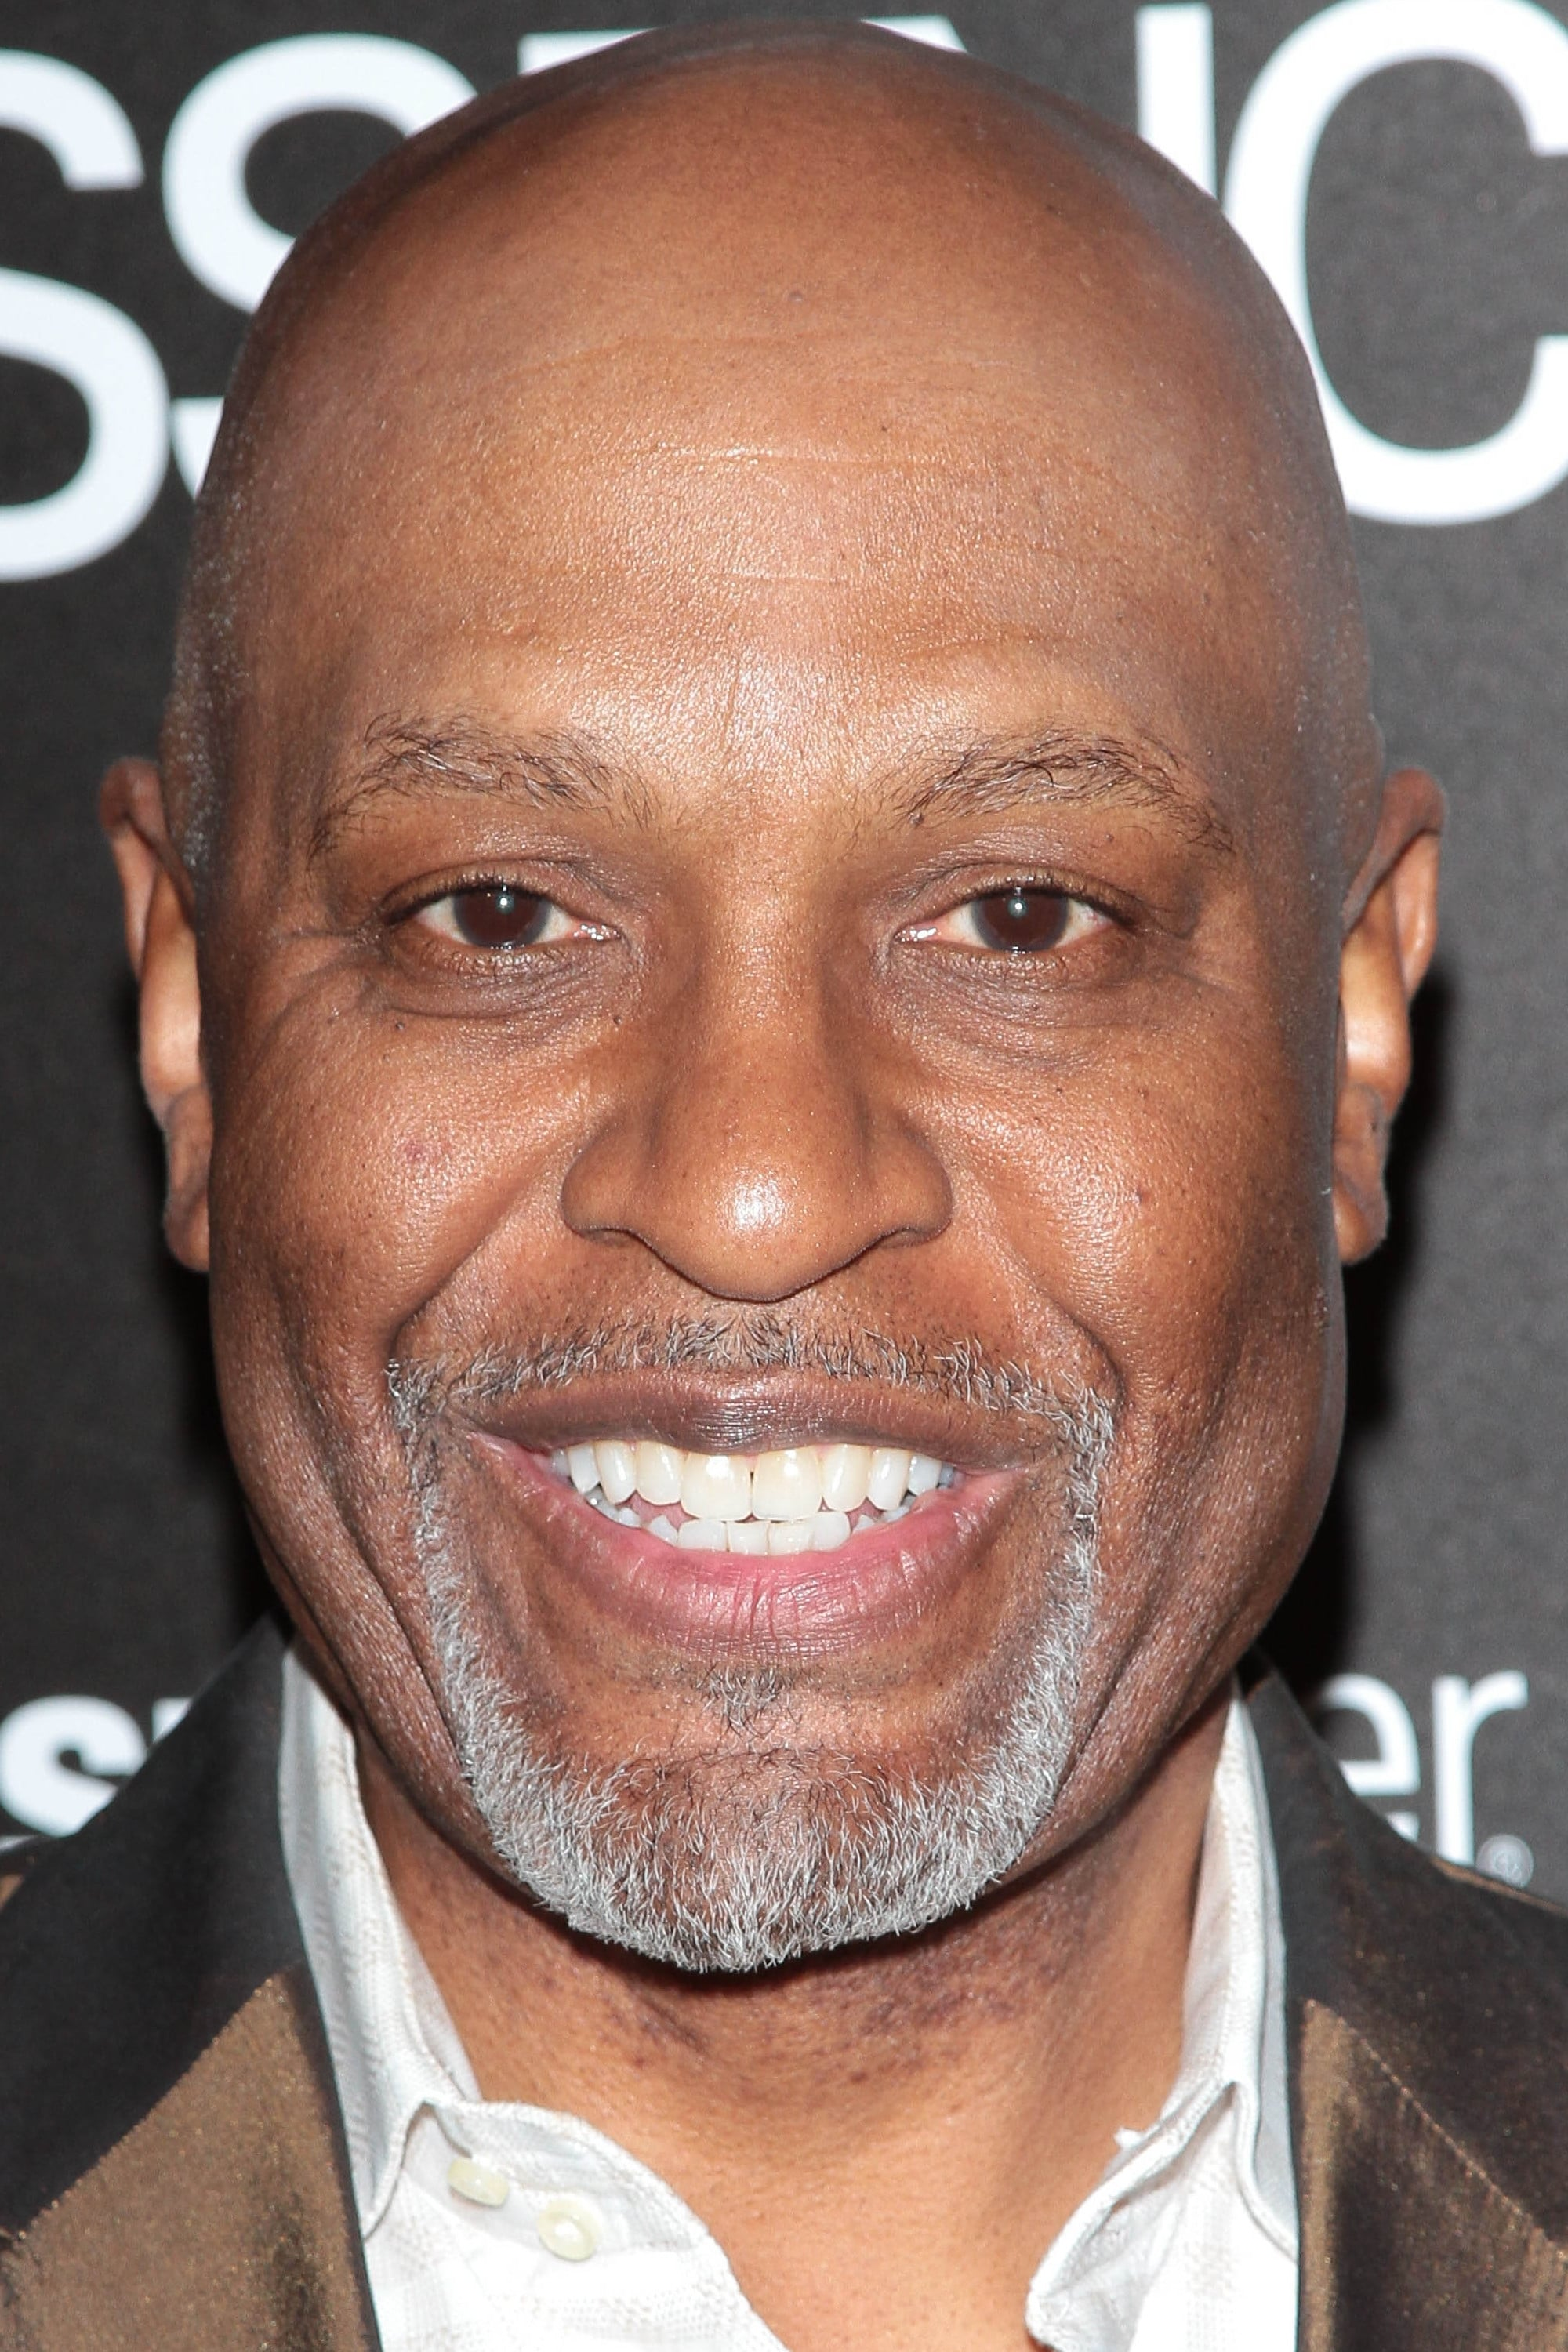 James Pickens Jr. / Richard Webber